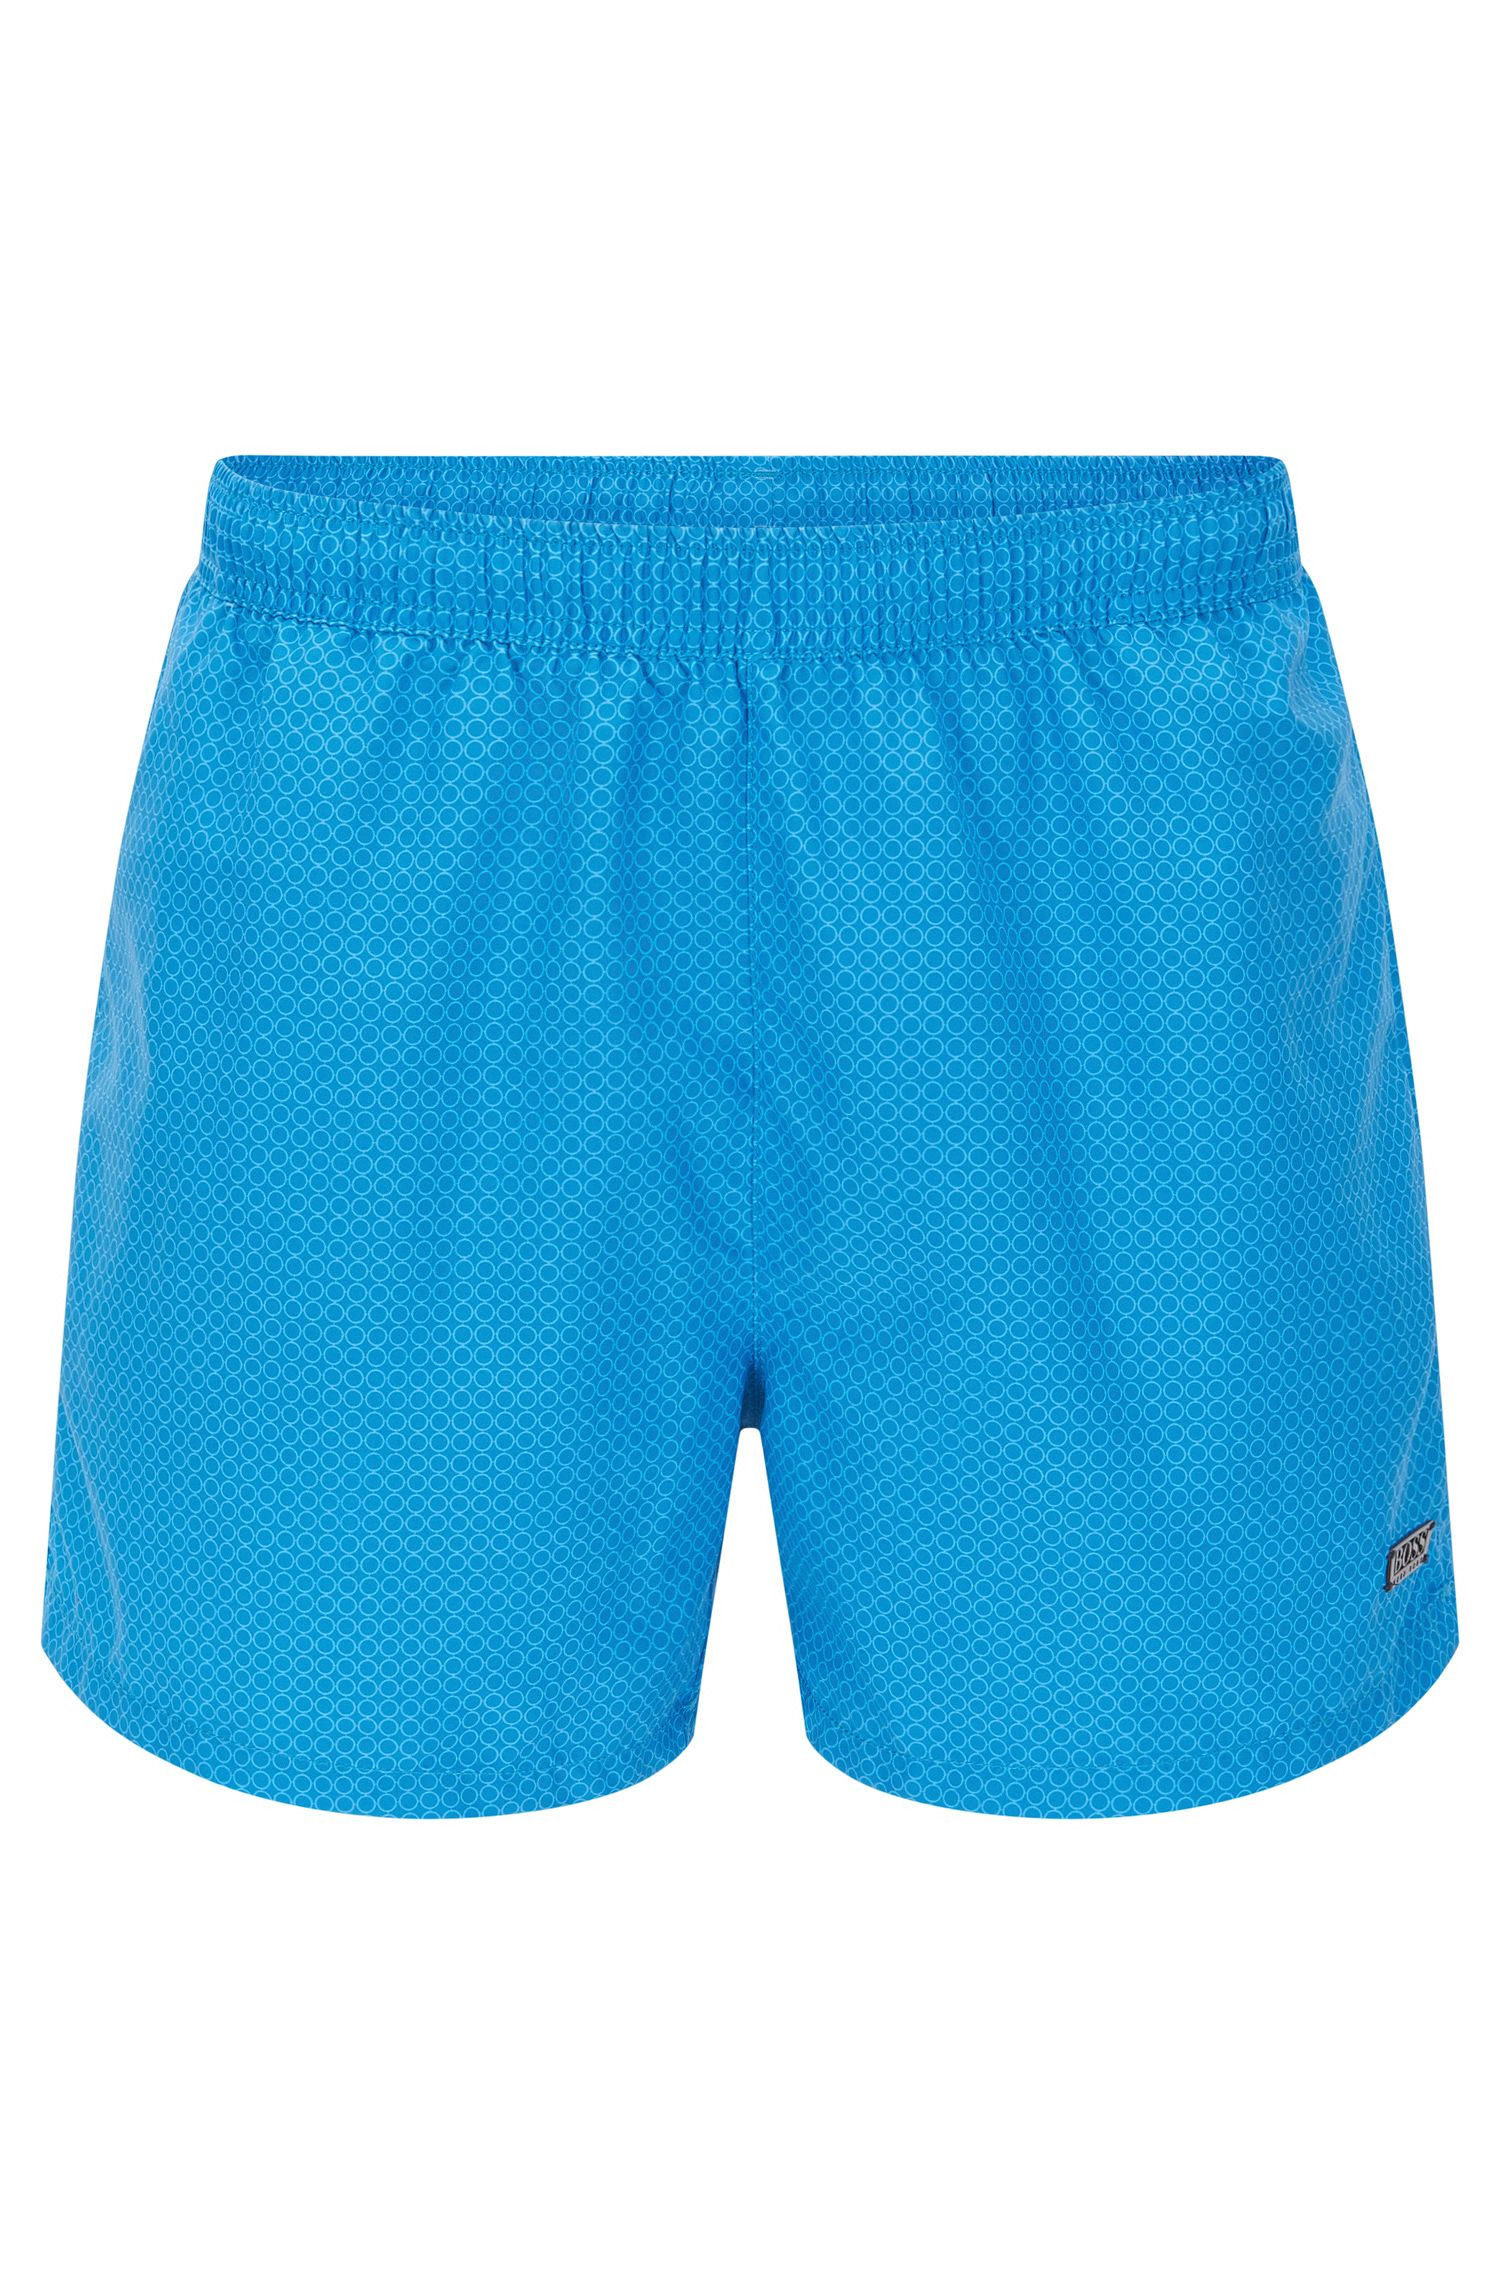 Quick Dry Patterned Swim Trunk | Kingfish, Open Blue